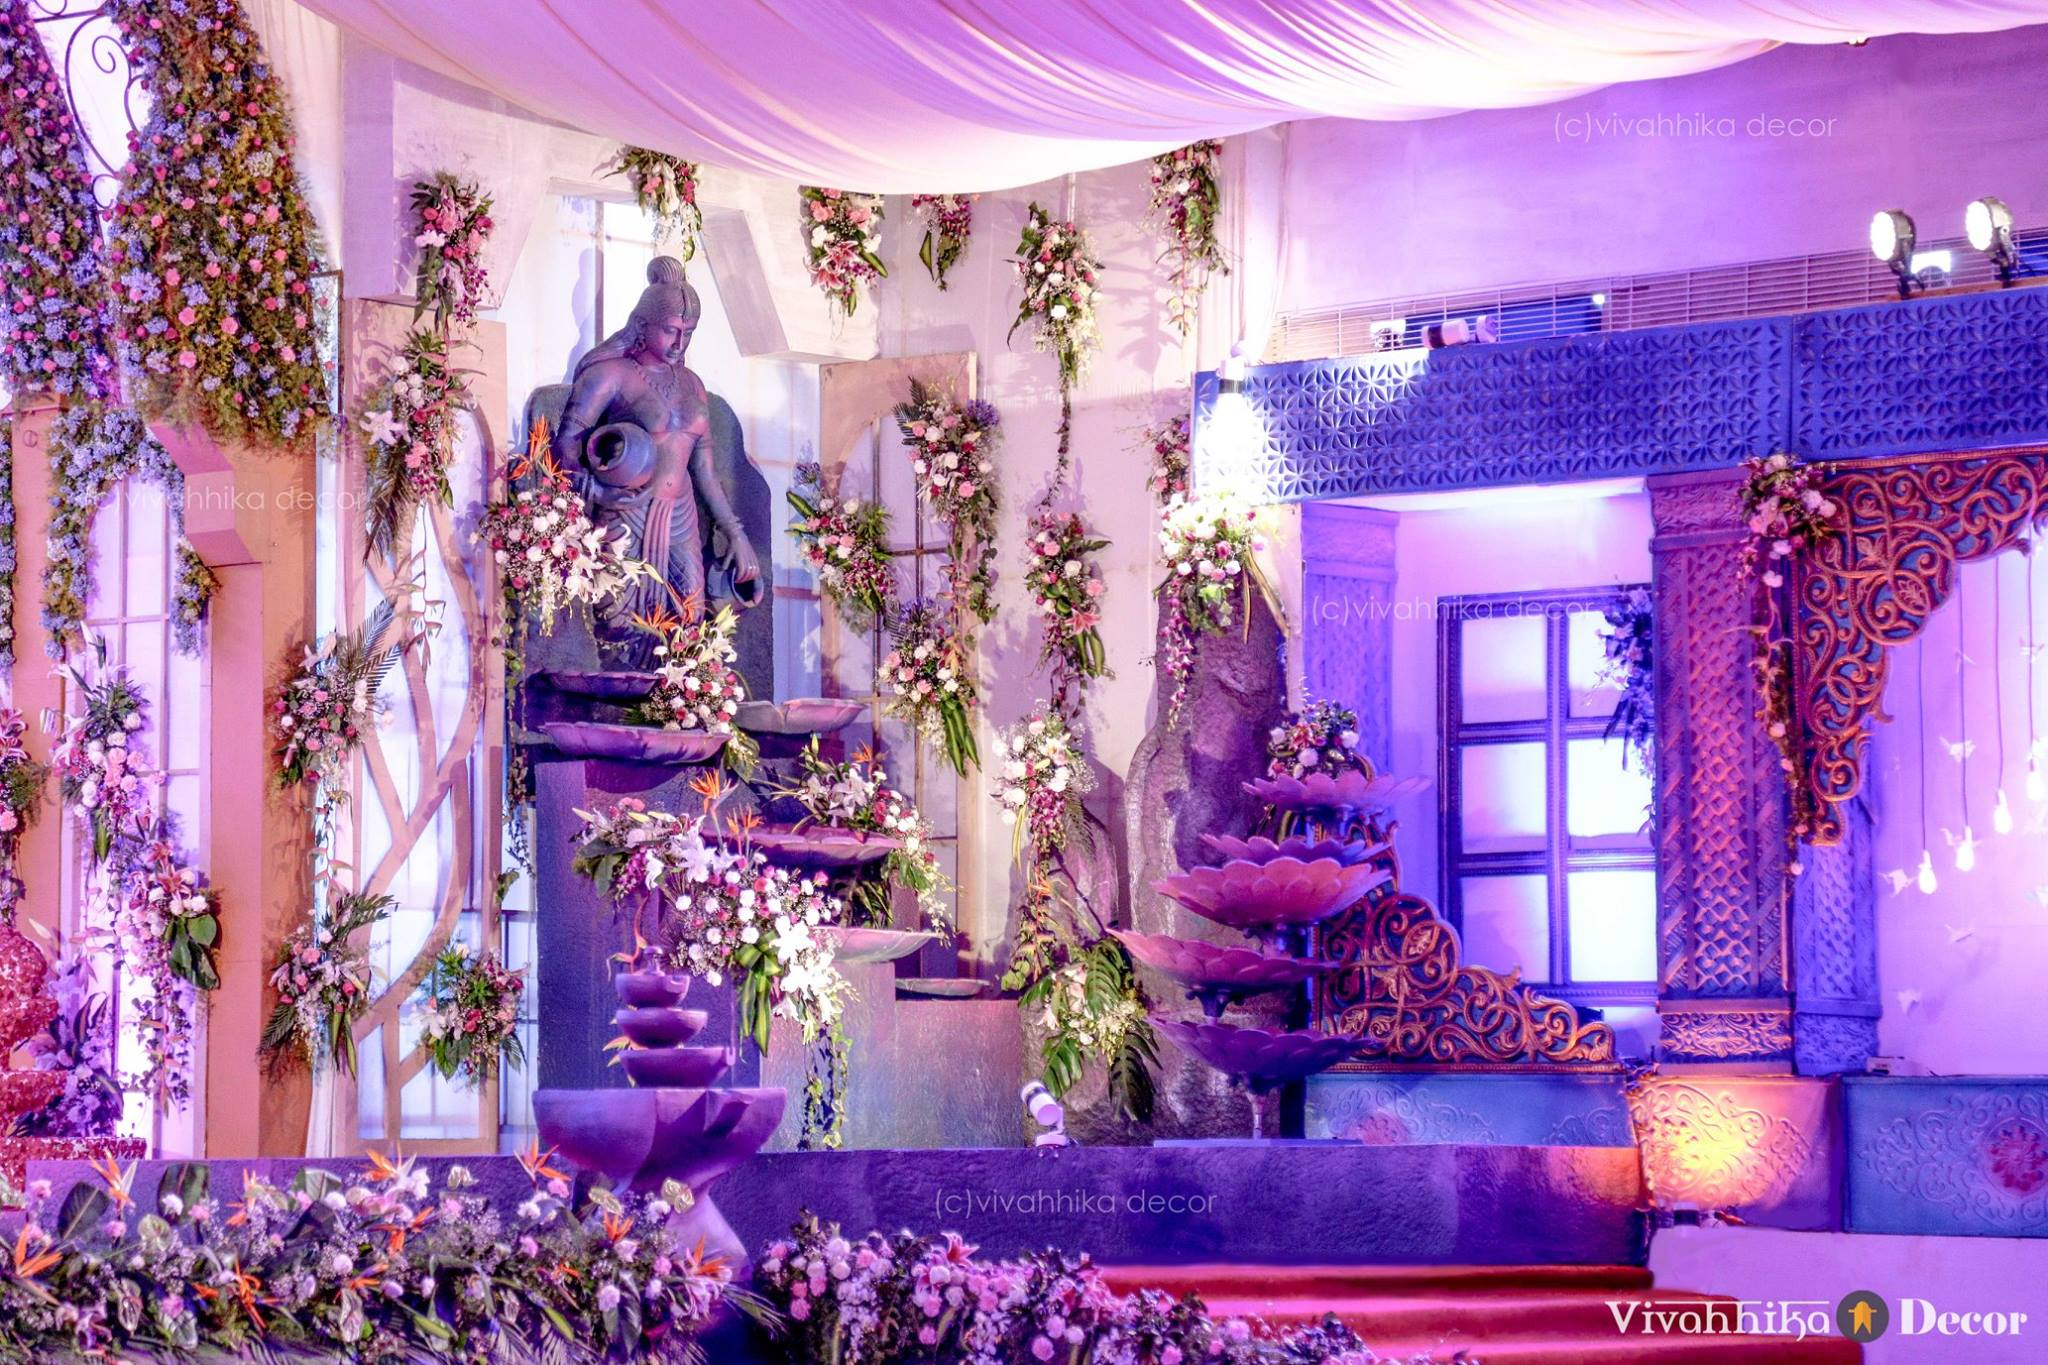 Floral reverie vivahhika vivahhika is a leading bespoke wedding decorations company that has been creating dream weddings since 2011 we are based in coimbatore and our clients are junglespirit Image collections